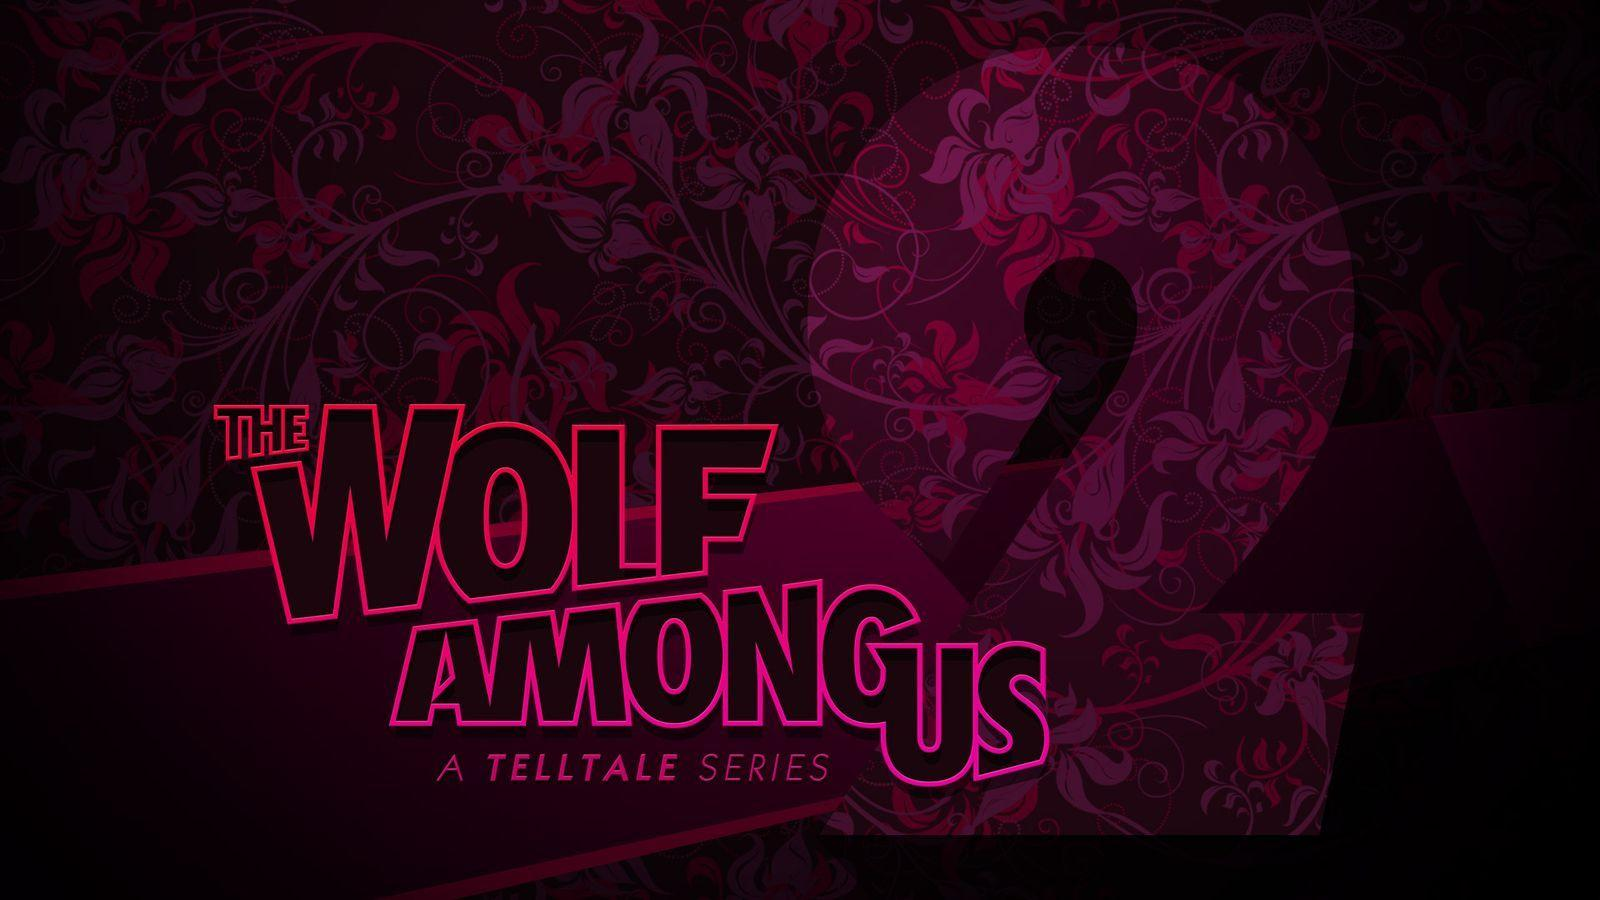 The Wolf Among Us season 2 arrives next year